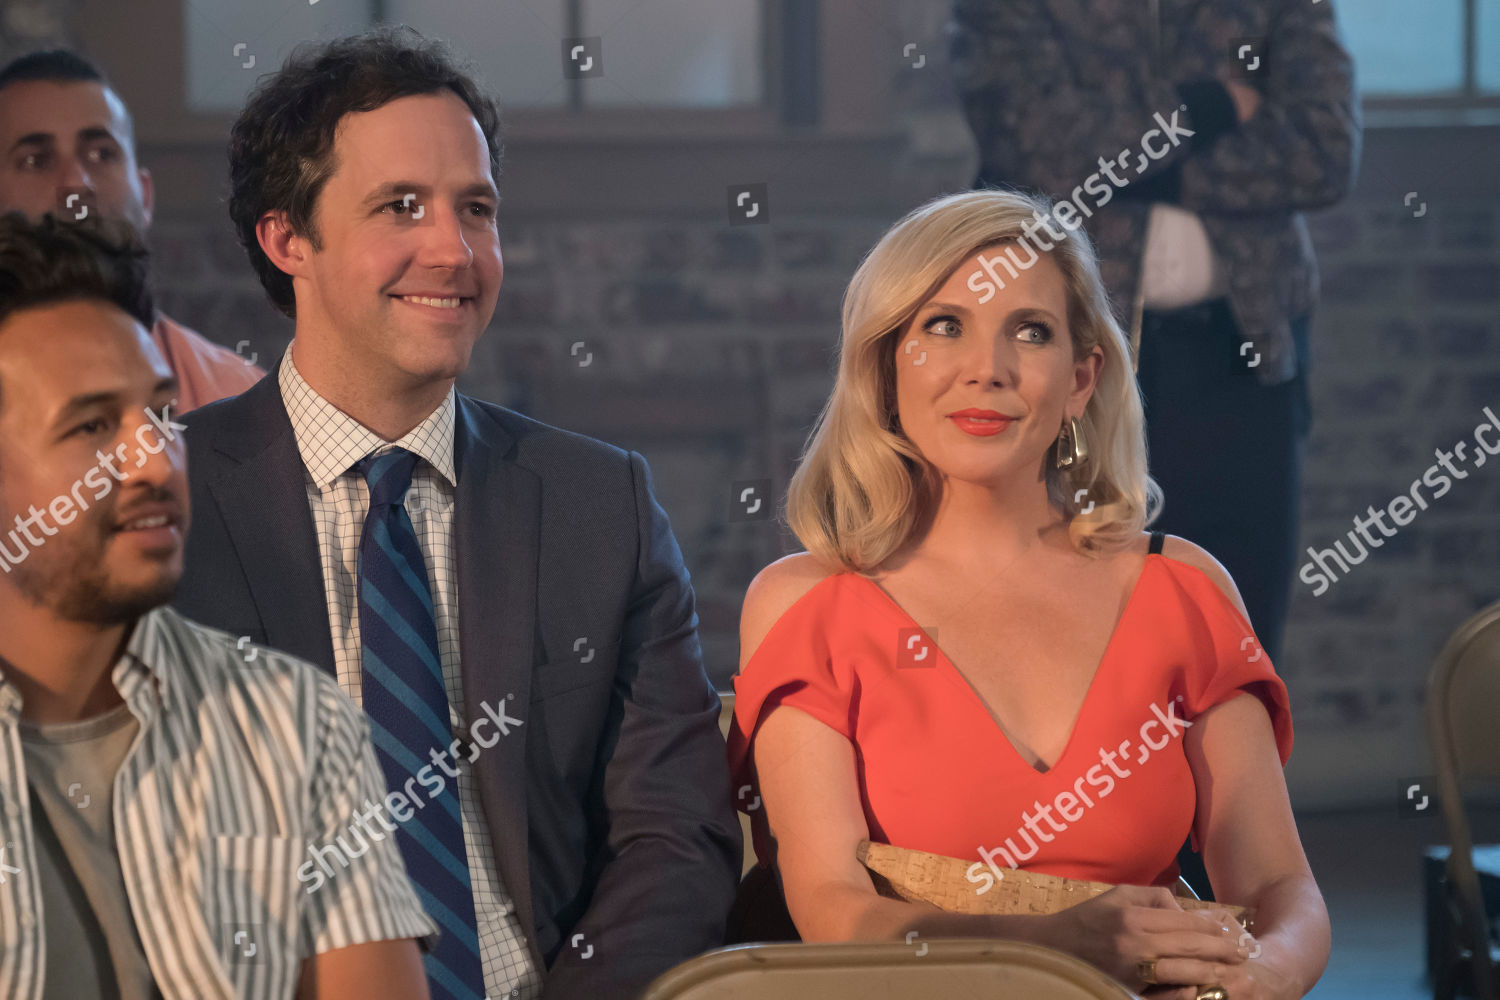 Peter Cambor Barry June Diane Raphael Brianna Editorial Stock Photo Stock Image Shutterstock Peter cambor interviewed at the premiere of showtime's roadies #roadiespremiere #shoroadies. https www shutterstock com editorial image editorial grace and frankie tv show season 5 2019 10063867bc